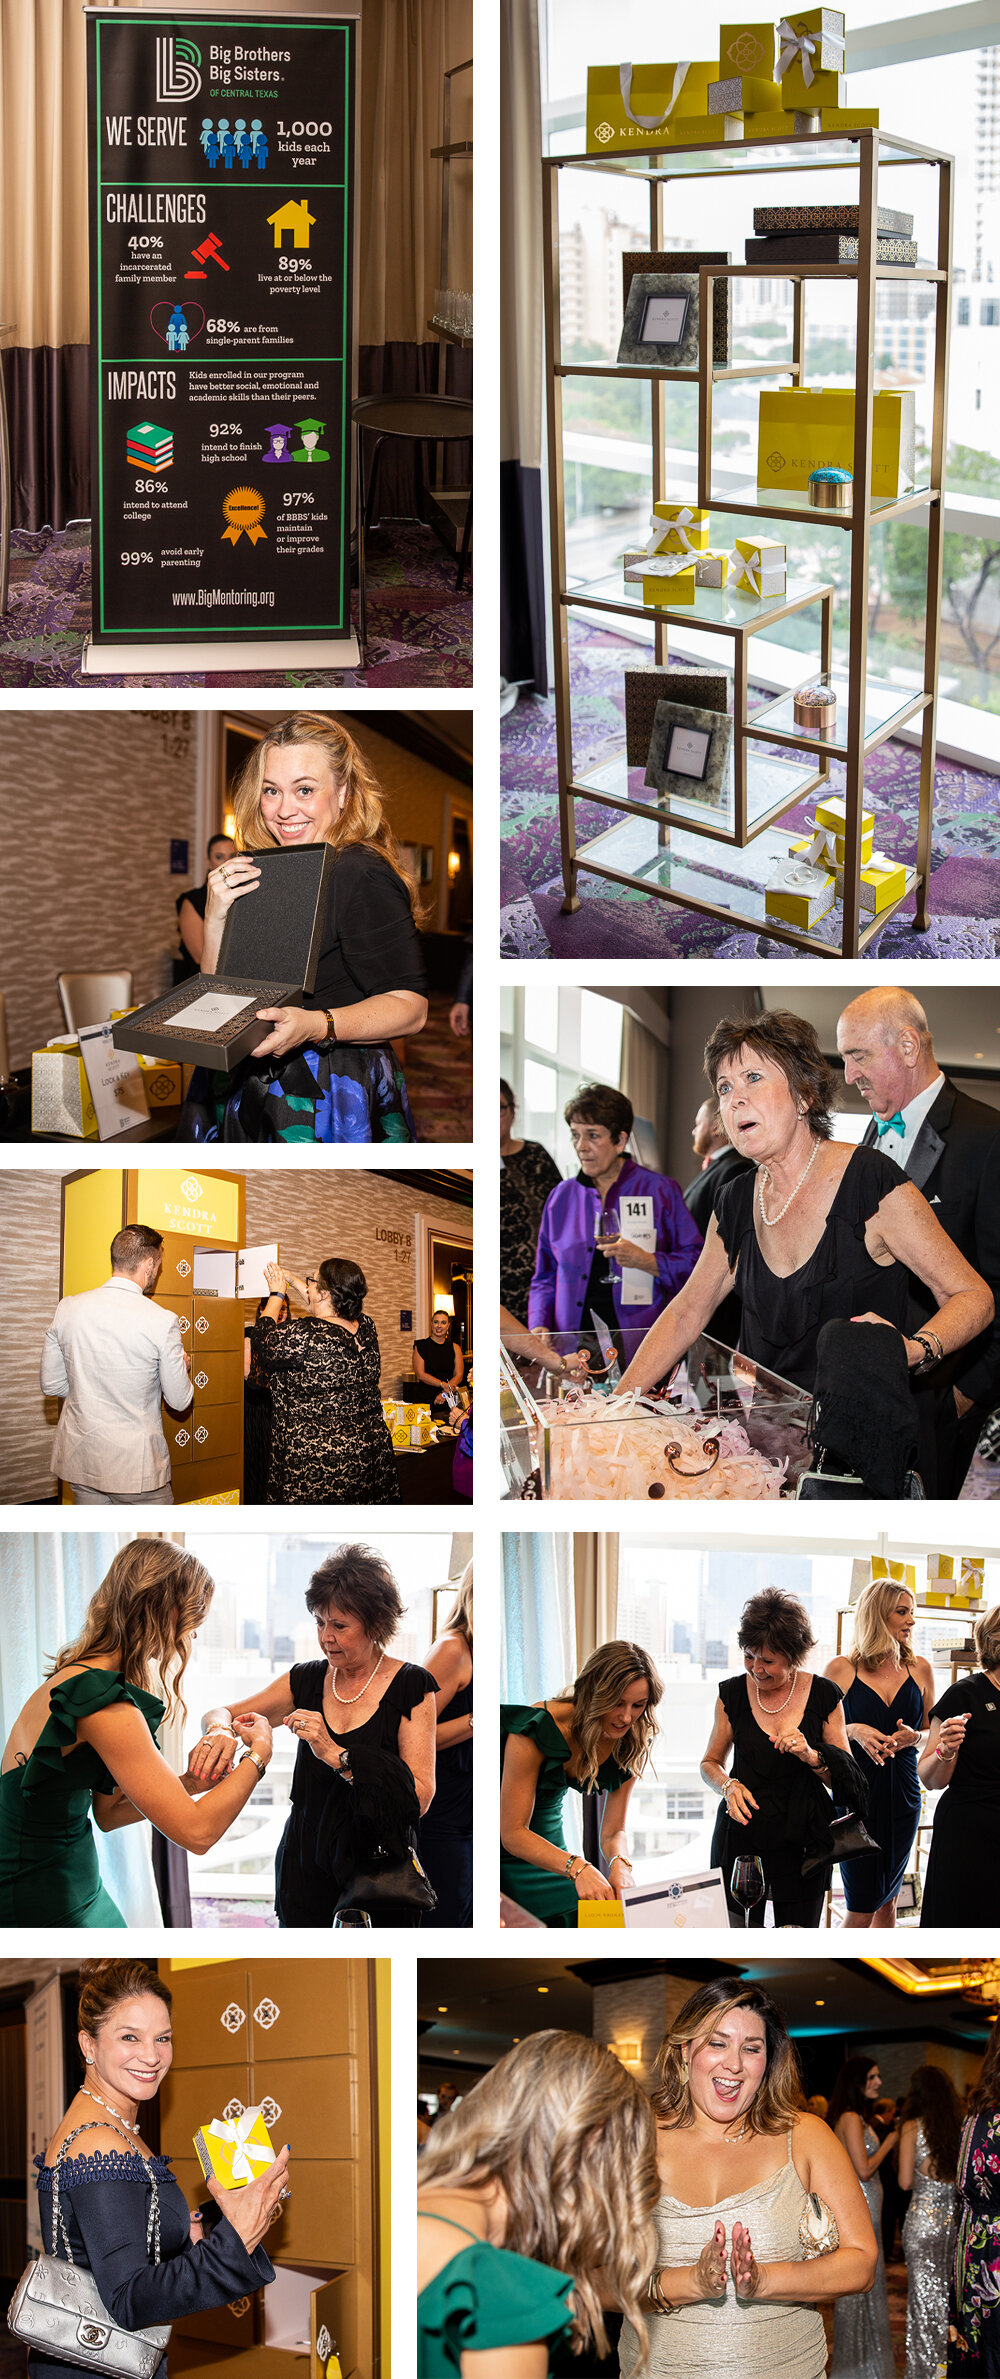 The Big Brothers Big Sister Ice Ball Gala had two Kendra Scott stations where guests paid to play two different games and win Kendra Scott pieces. One was a treasure chest where guests reached into a confetti filled box to find a colored gem that matched the different prizes available and the other was a locker that can only be opened by one key. Photos by Erin Reas event Photographer in Austin, TX